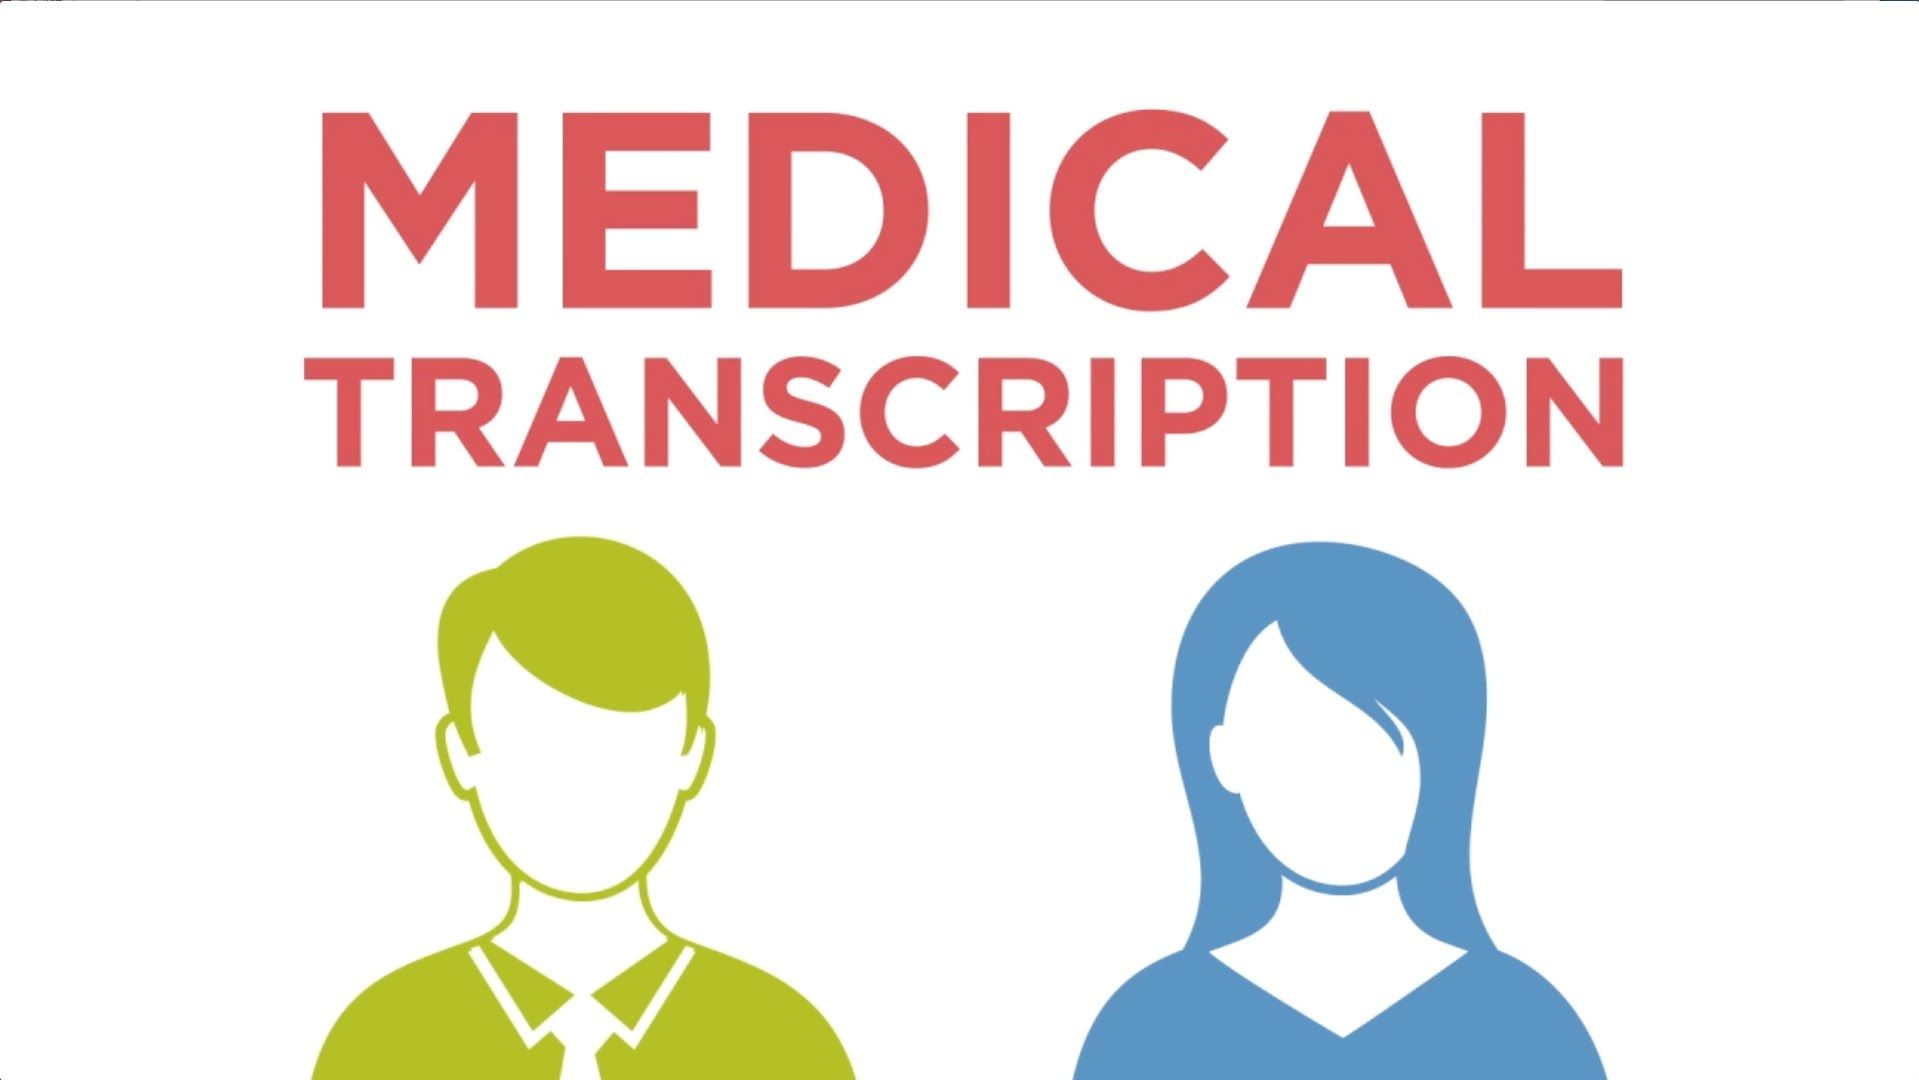 Medical transcription and editing career is it right for